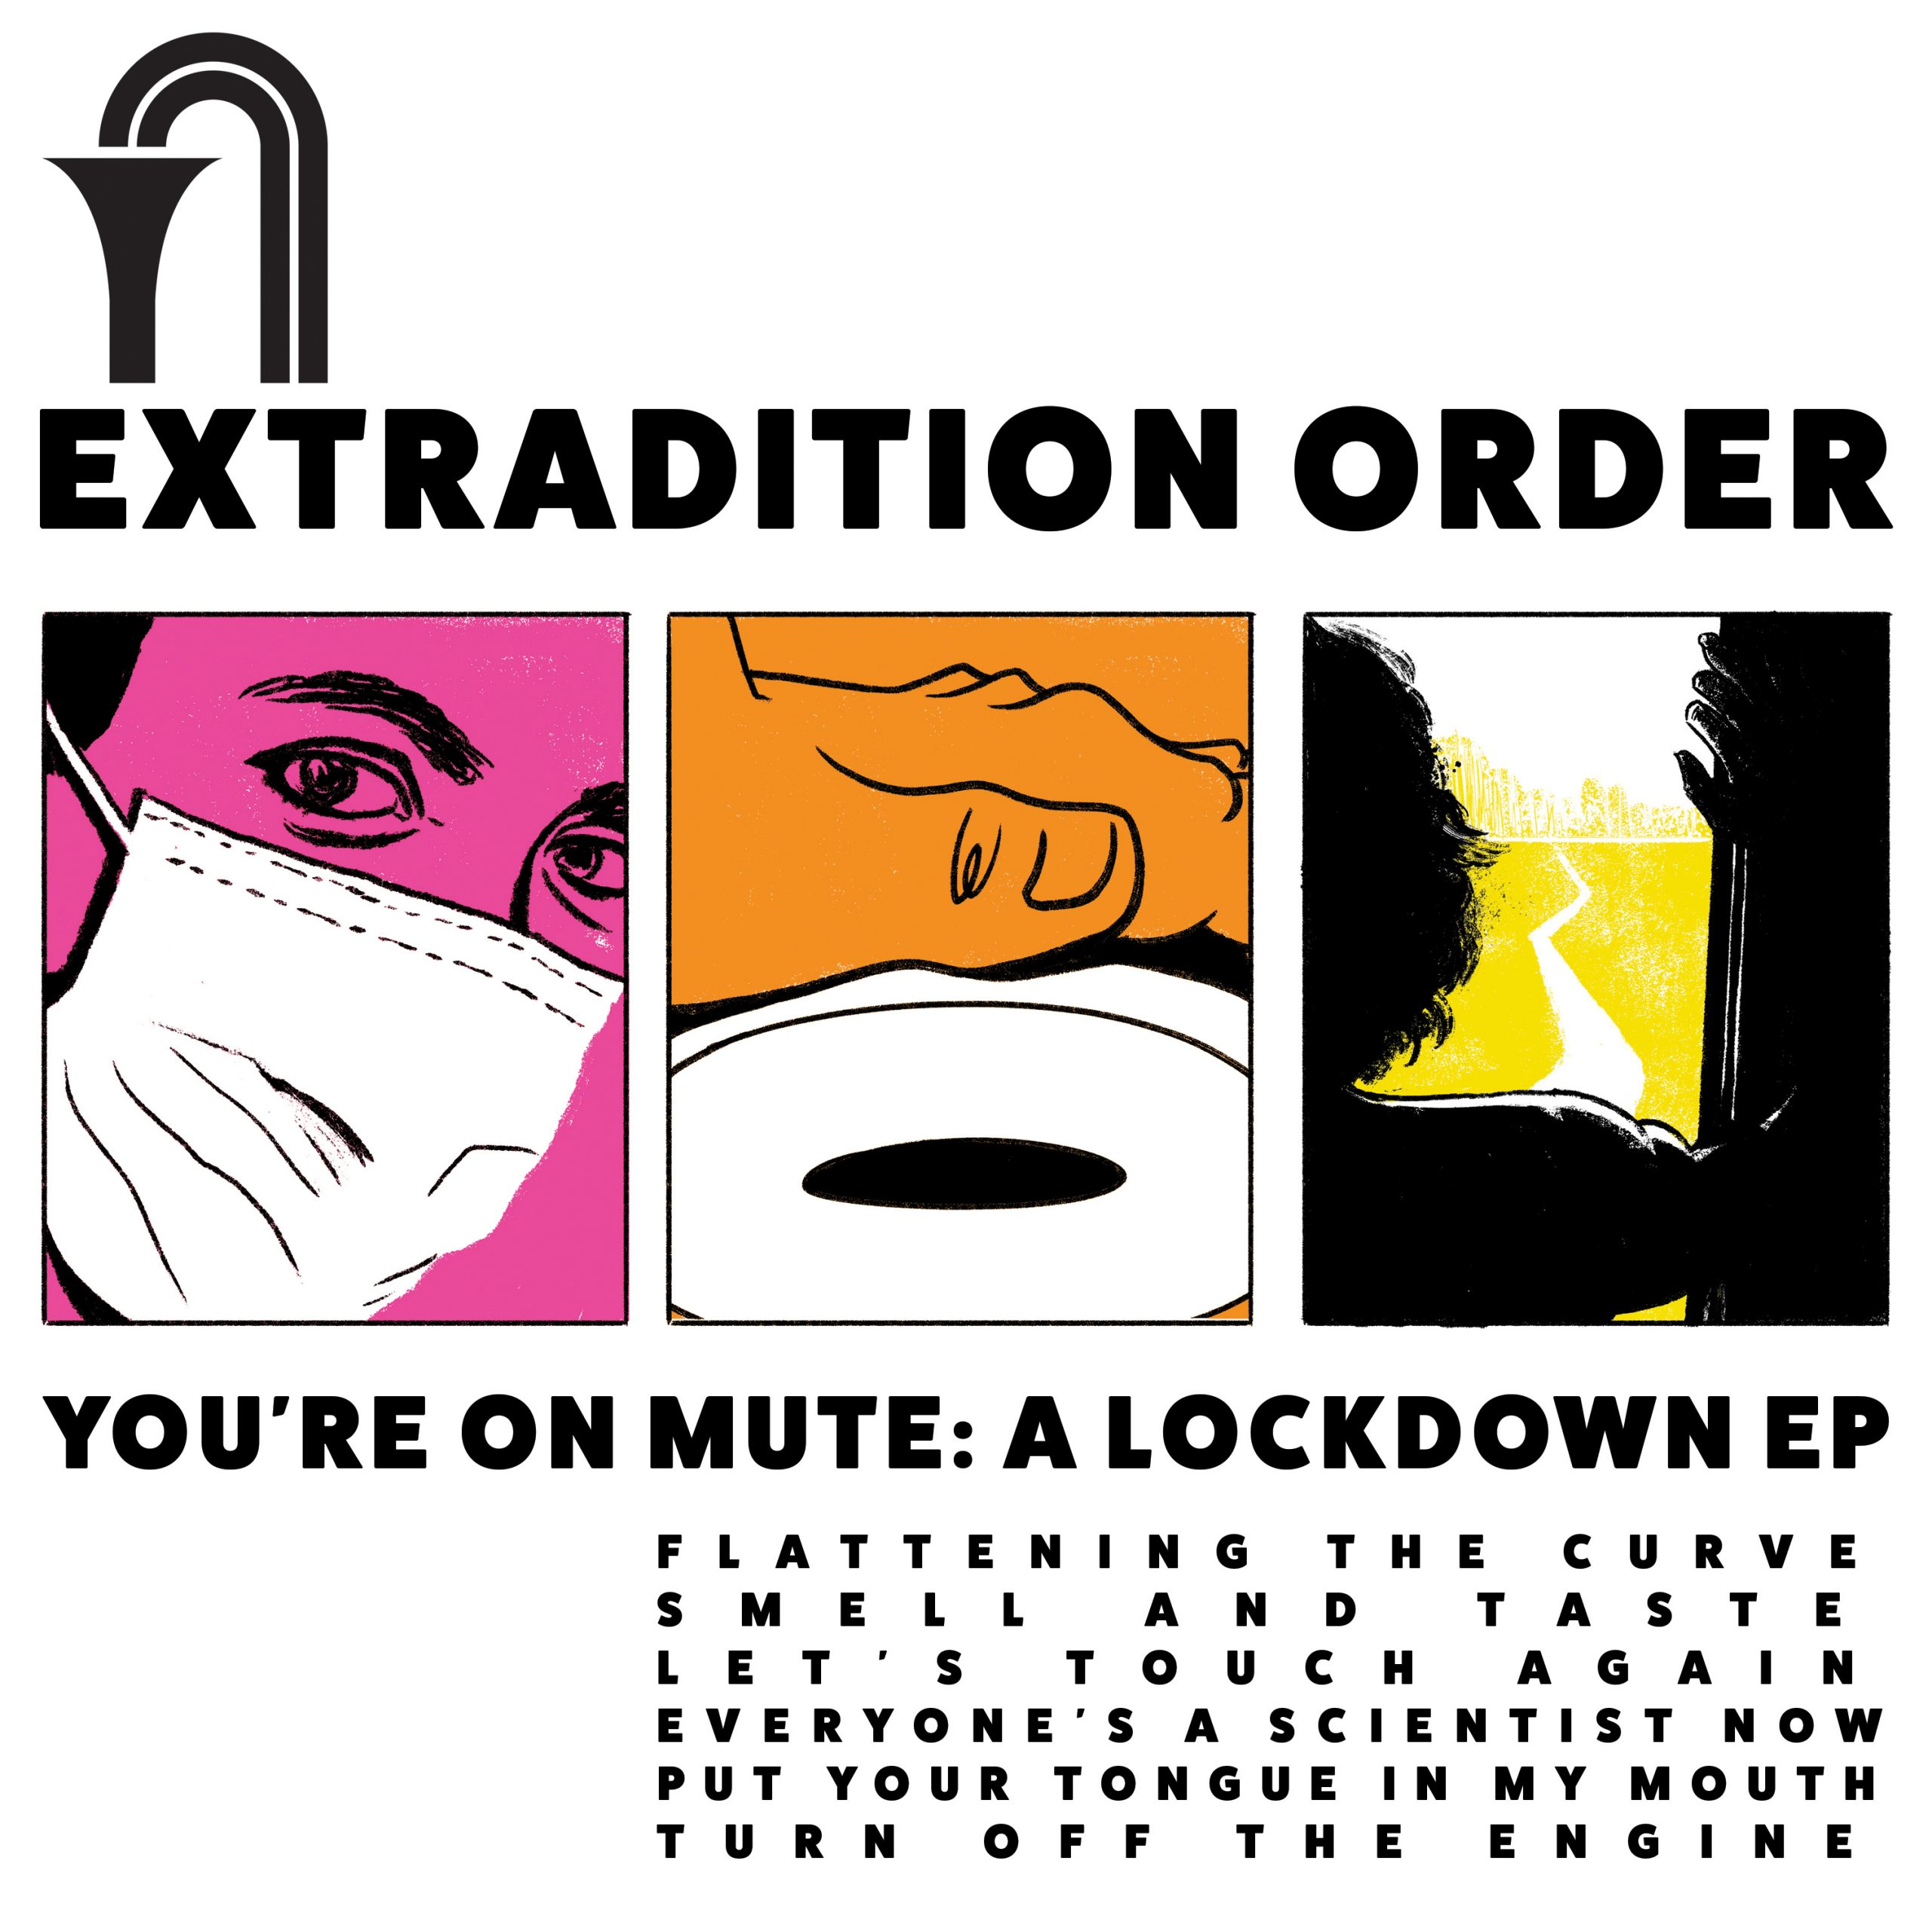 Extradition Order - You're On Mute: A Lockdown EP